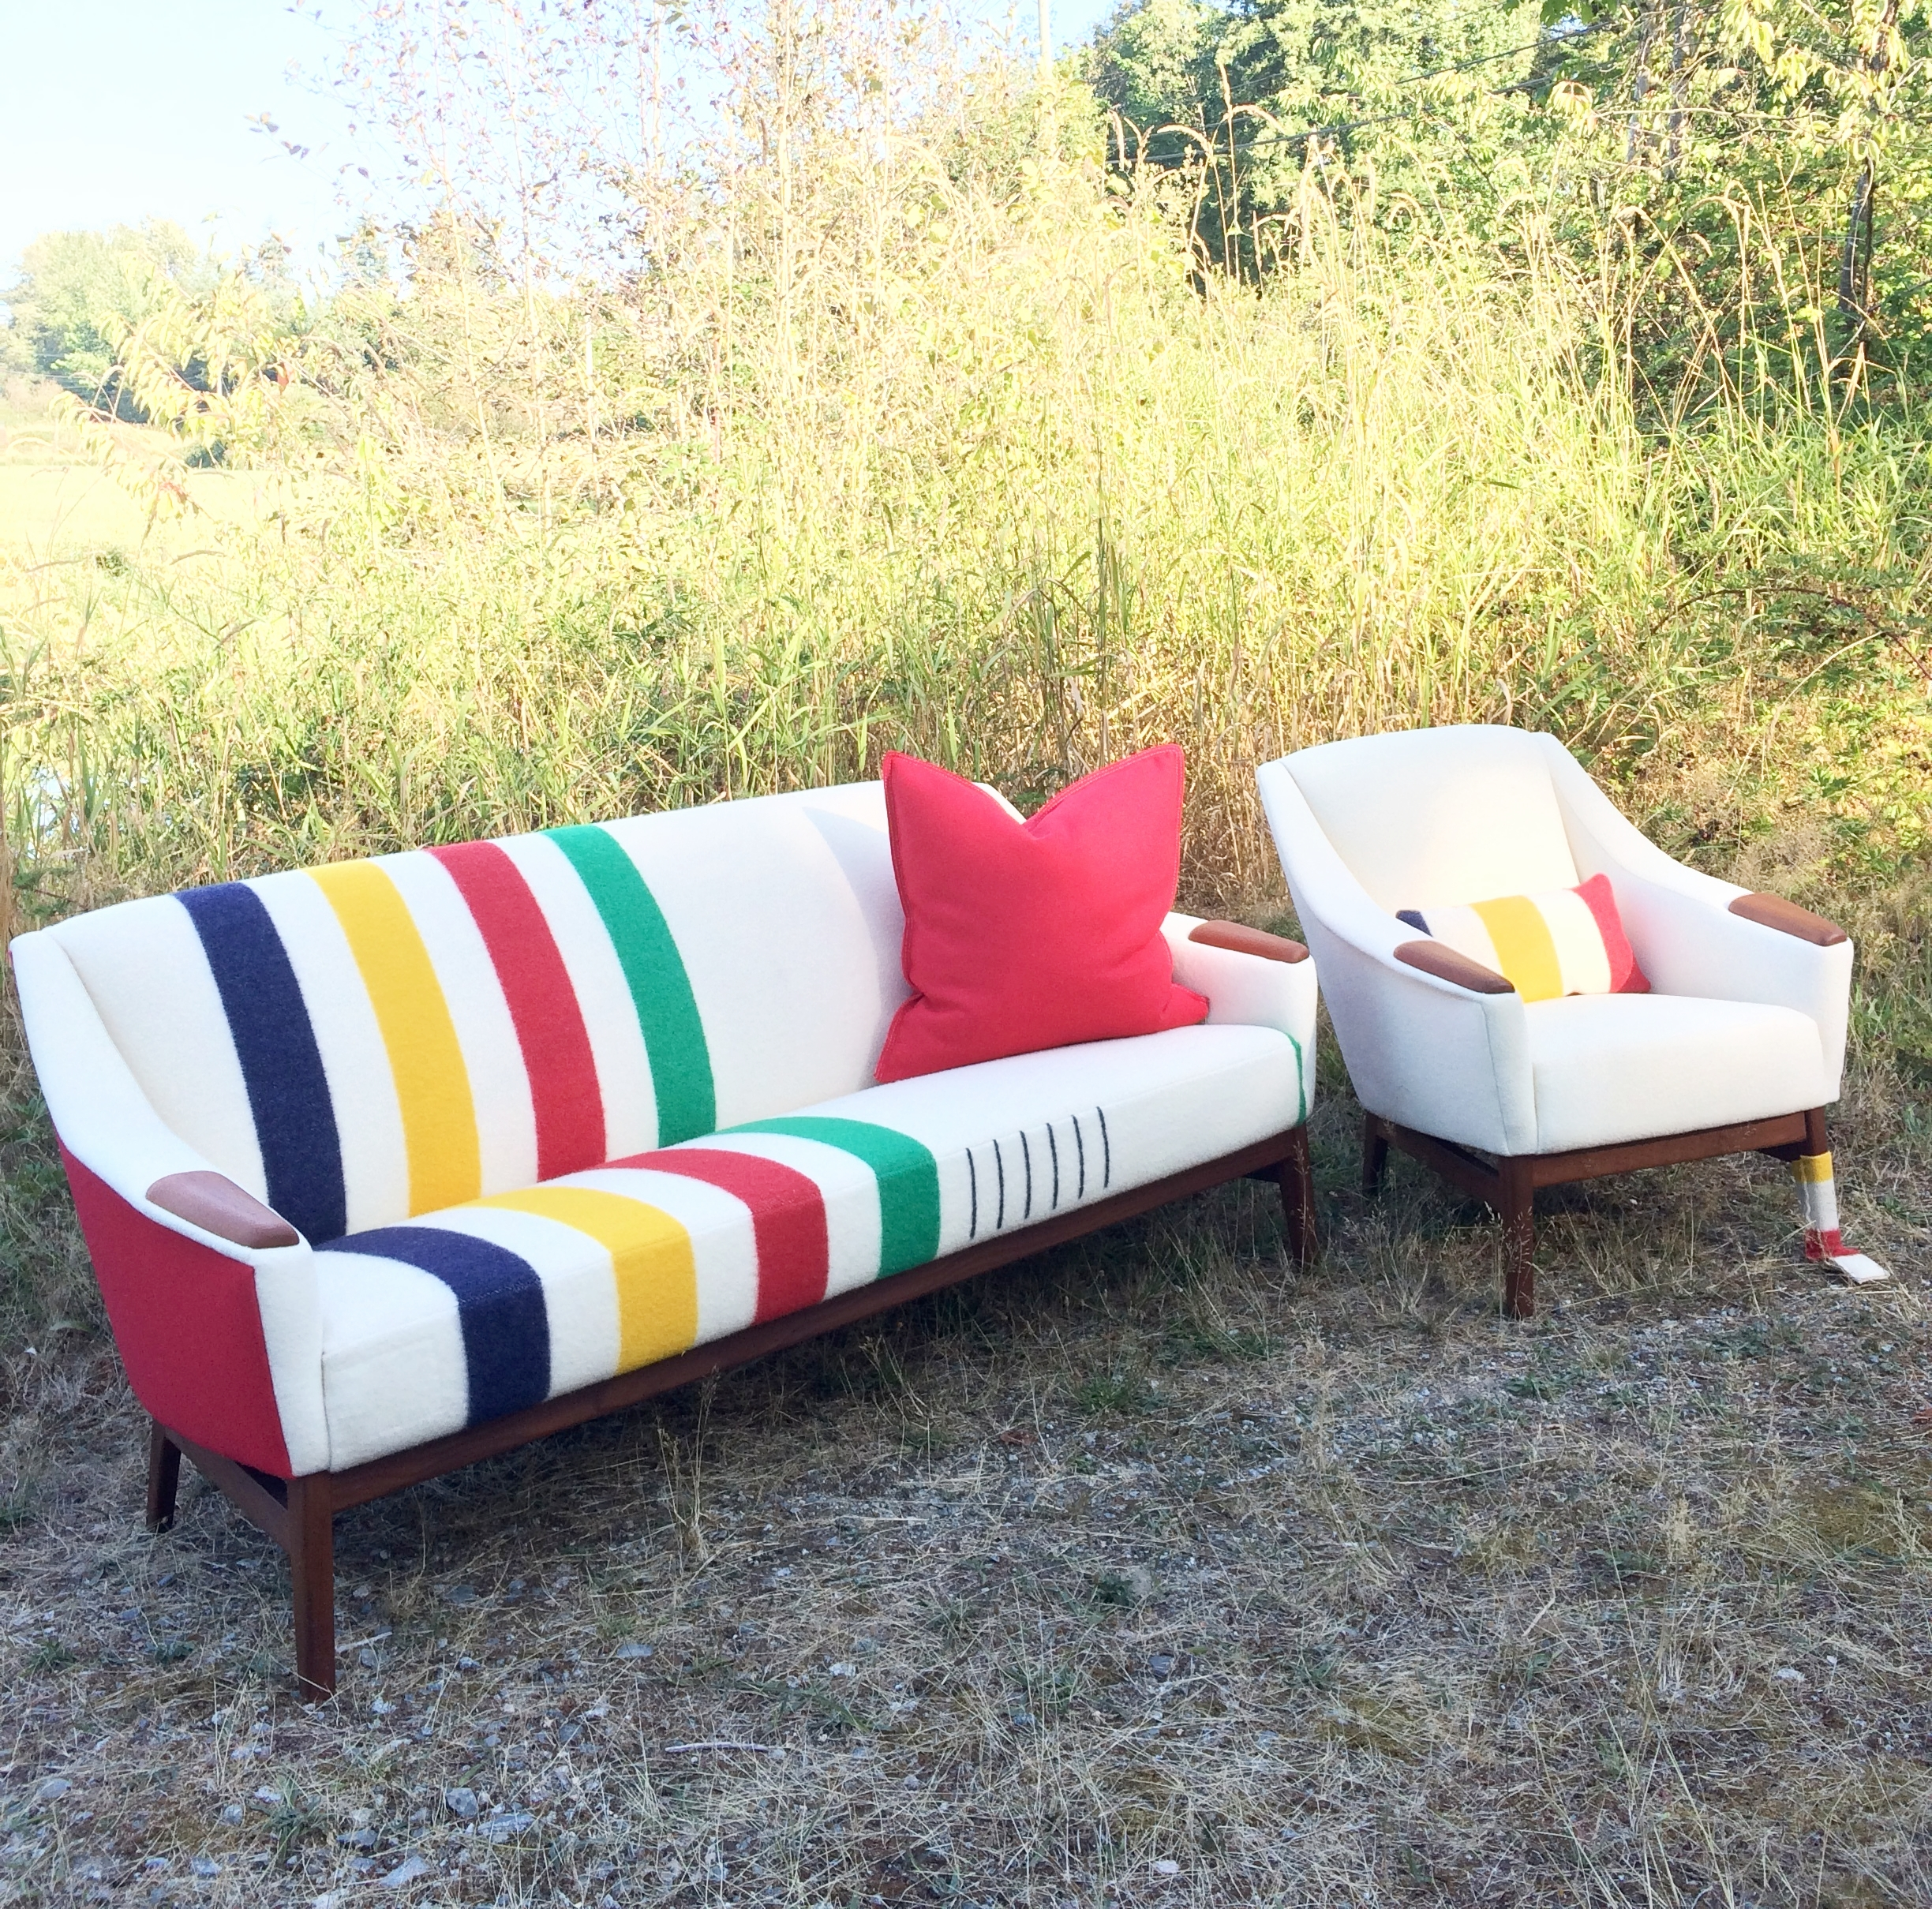 Vintage Hudson's Bay blanket upholstered on a vintage sofa set for Mid Century Modern Home.